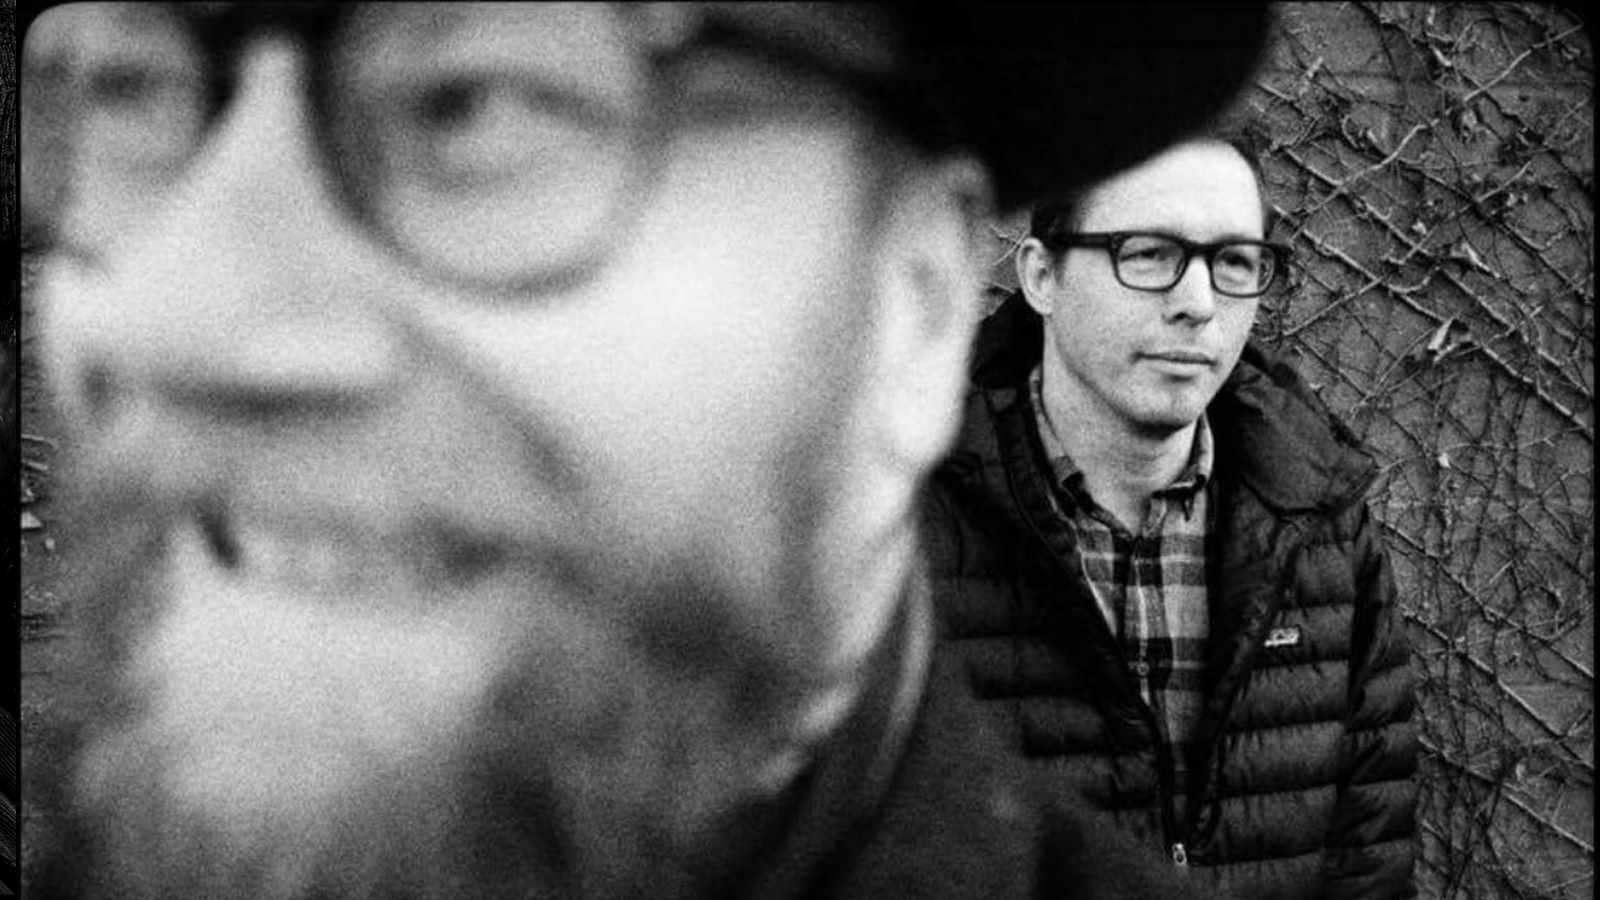 New Sounds: Mike Doughty's Ghost of Vroom